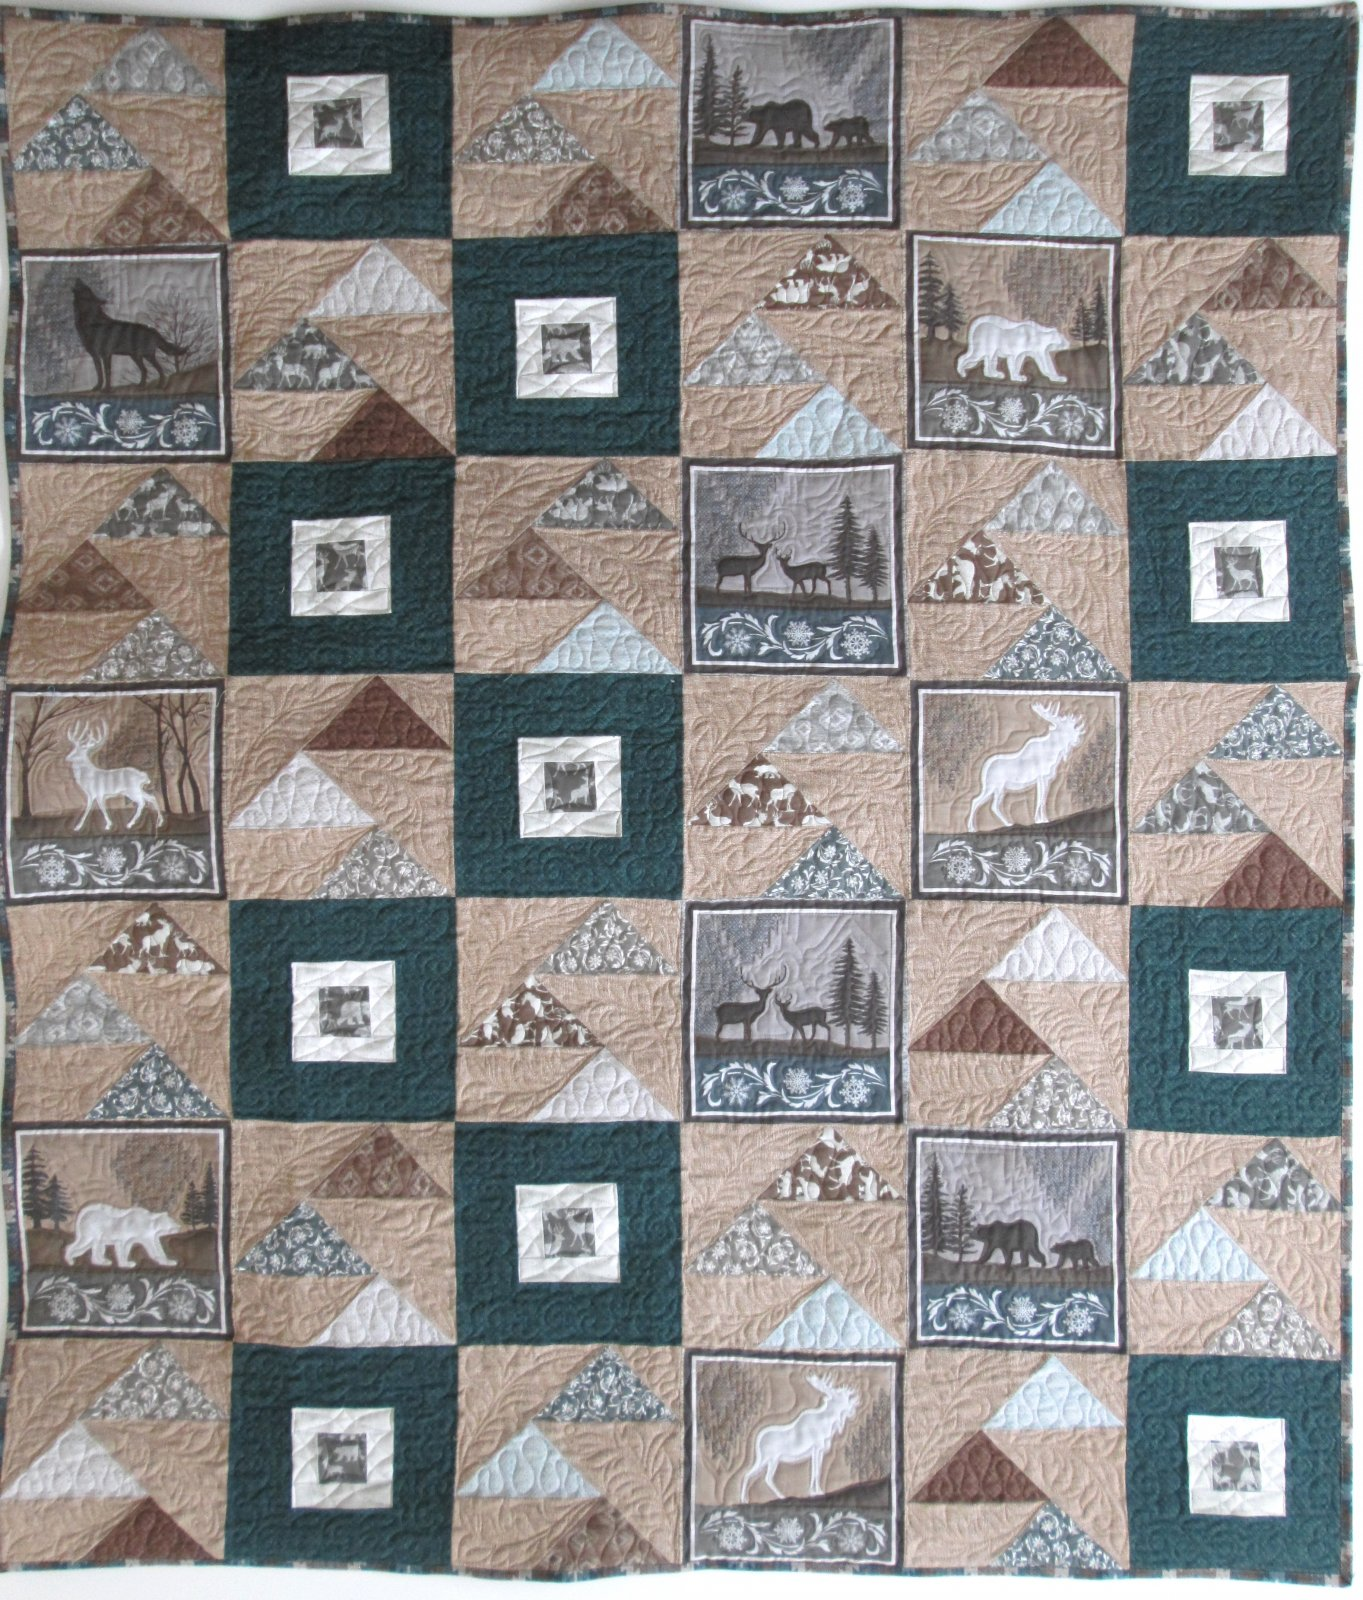 Staggered Geese Modern Lodge Quilt Sample